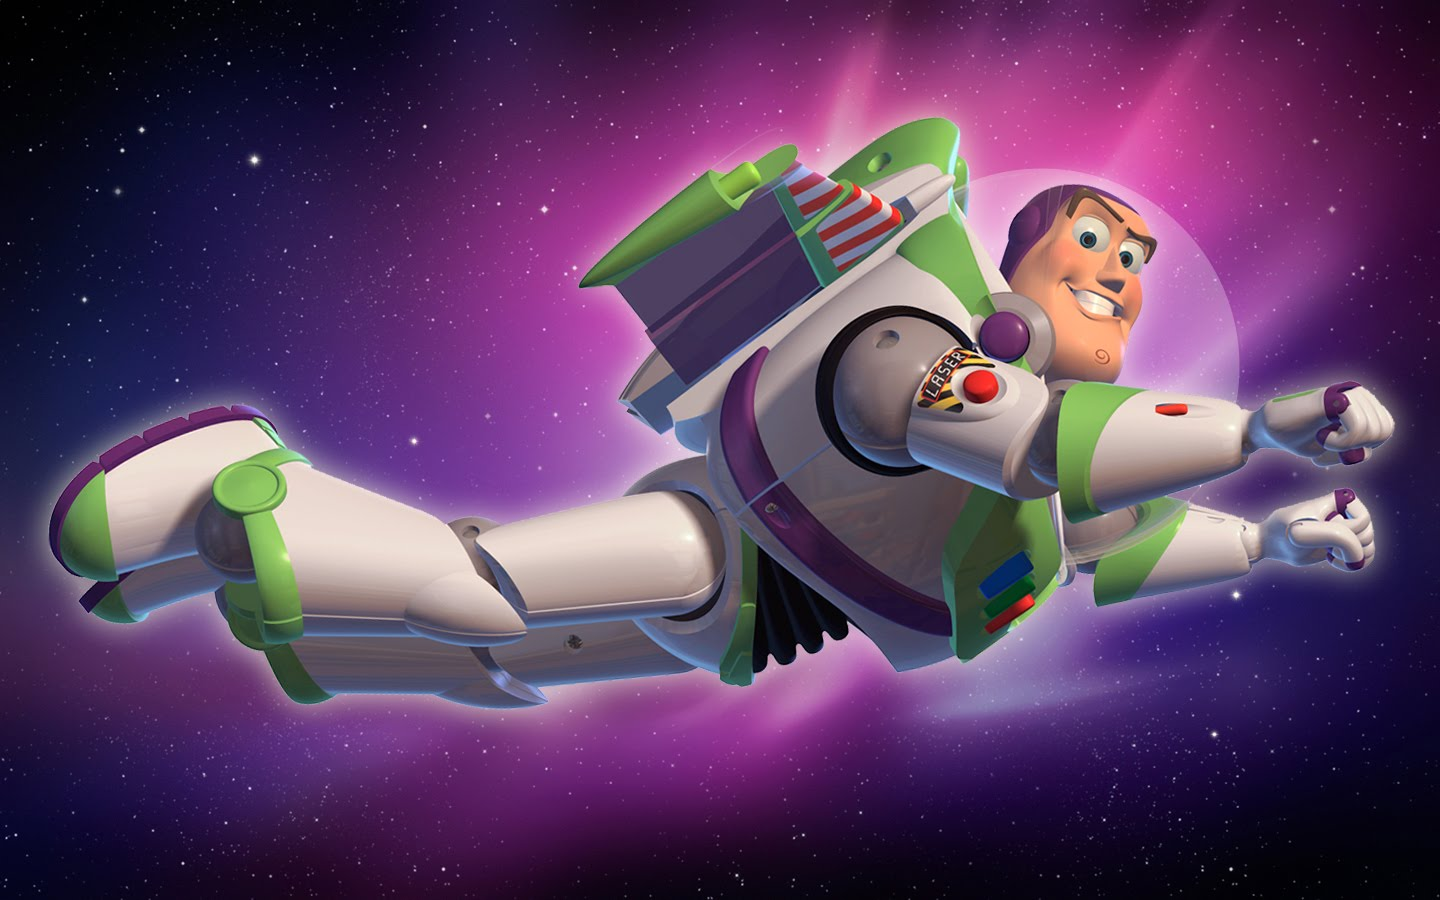 The Collaboration Trap How To Avoid Being Buzz Lightyear